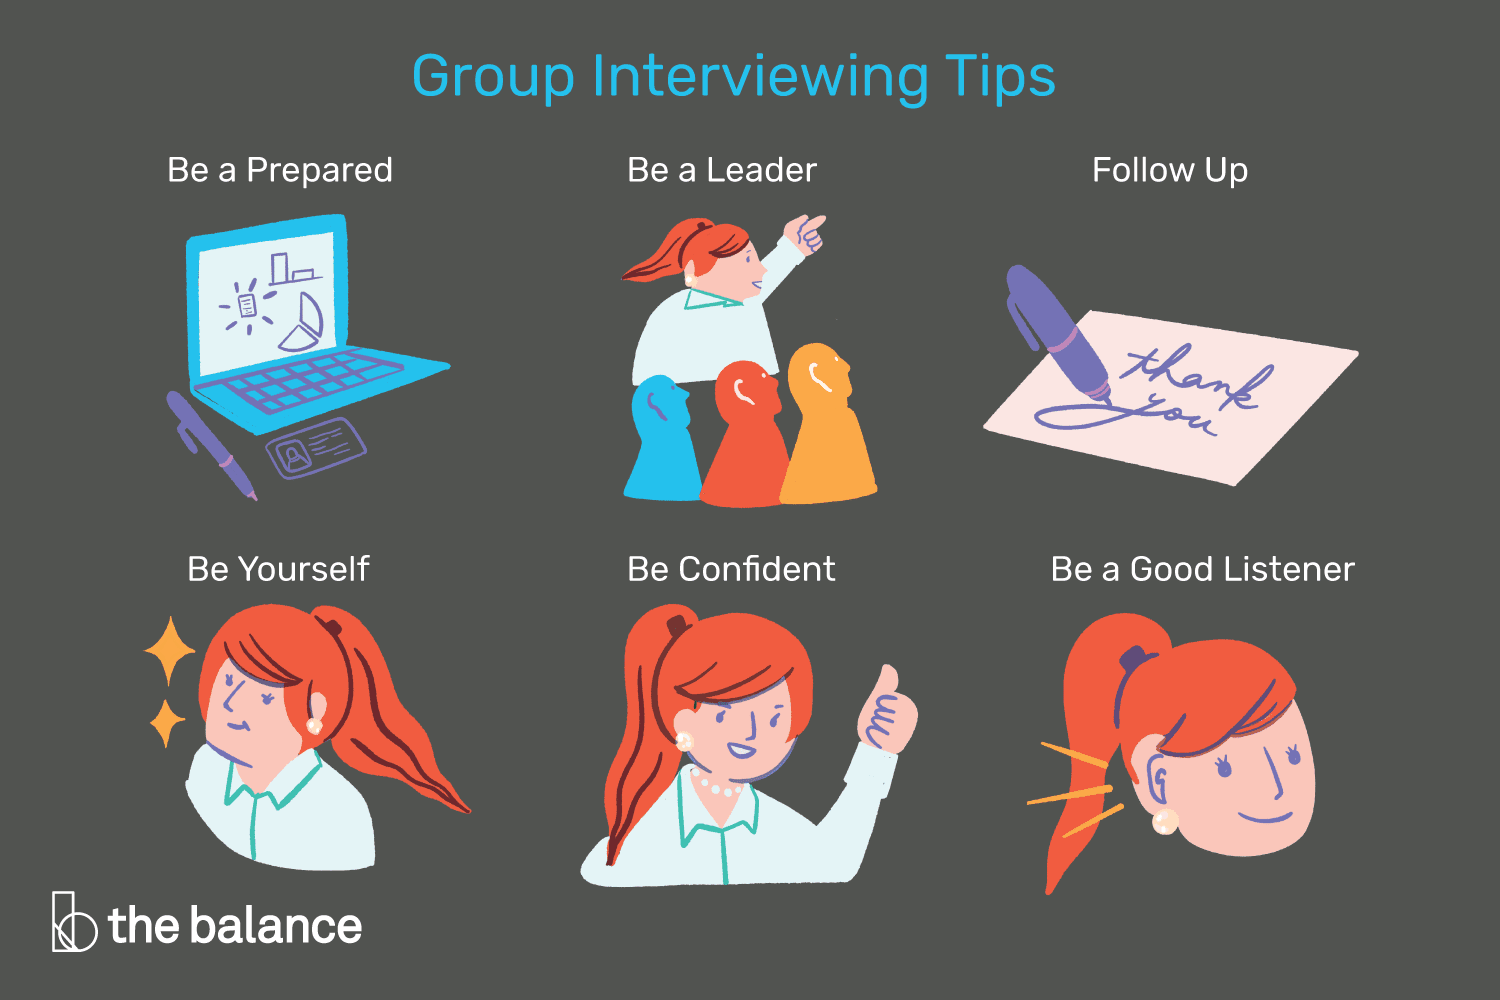 Group Interview Questions, Answers, and Interviewing Tips